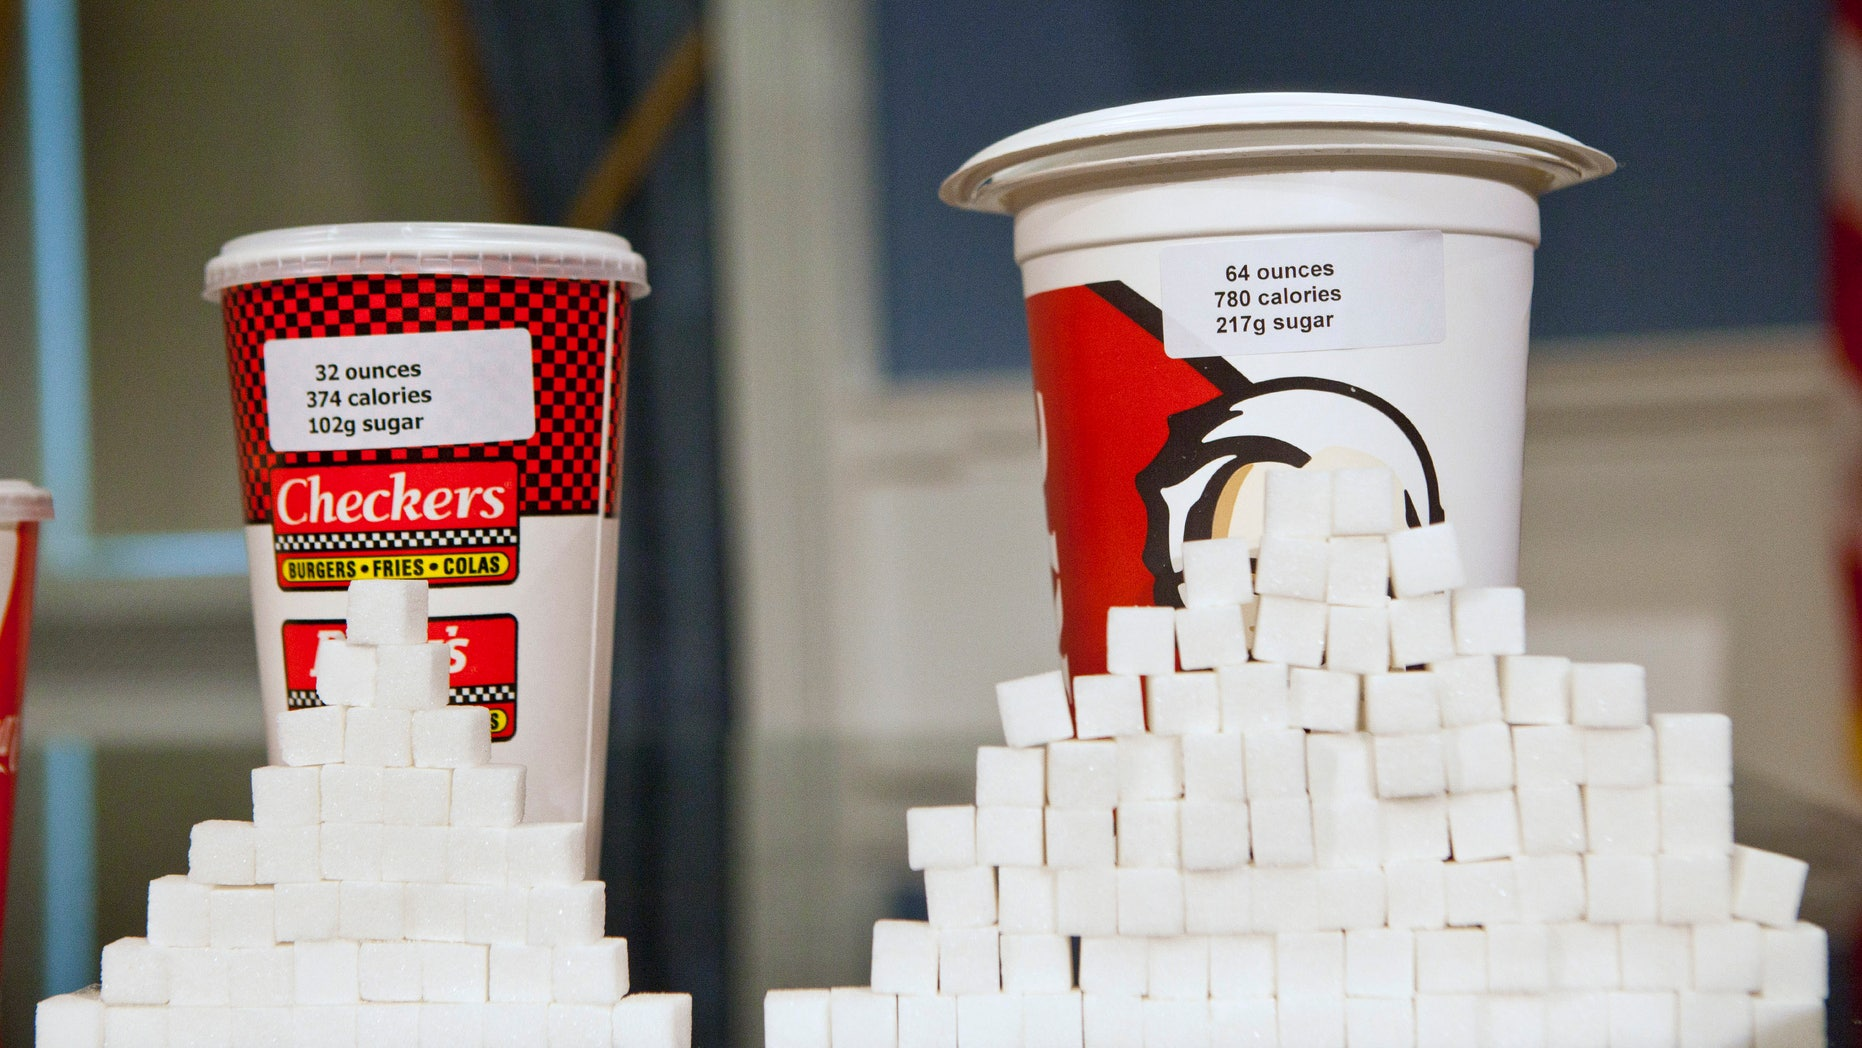 Soft drink cups sized (L-R) at 32 ounces and 64 ounces are displayed at a news conference at City Hall in New York, May 31, 2012. (REUTERS/Andrew Burton)